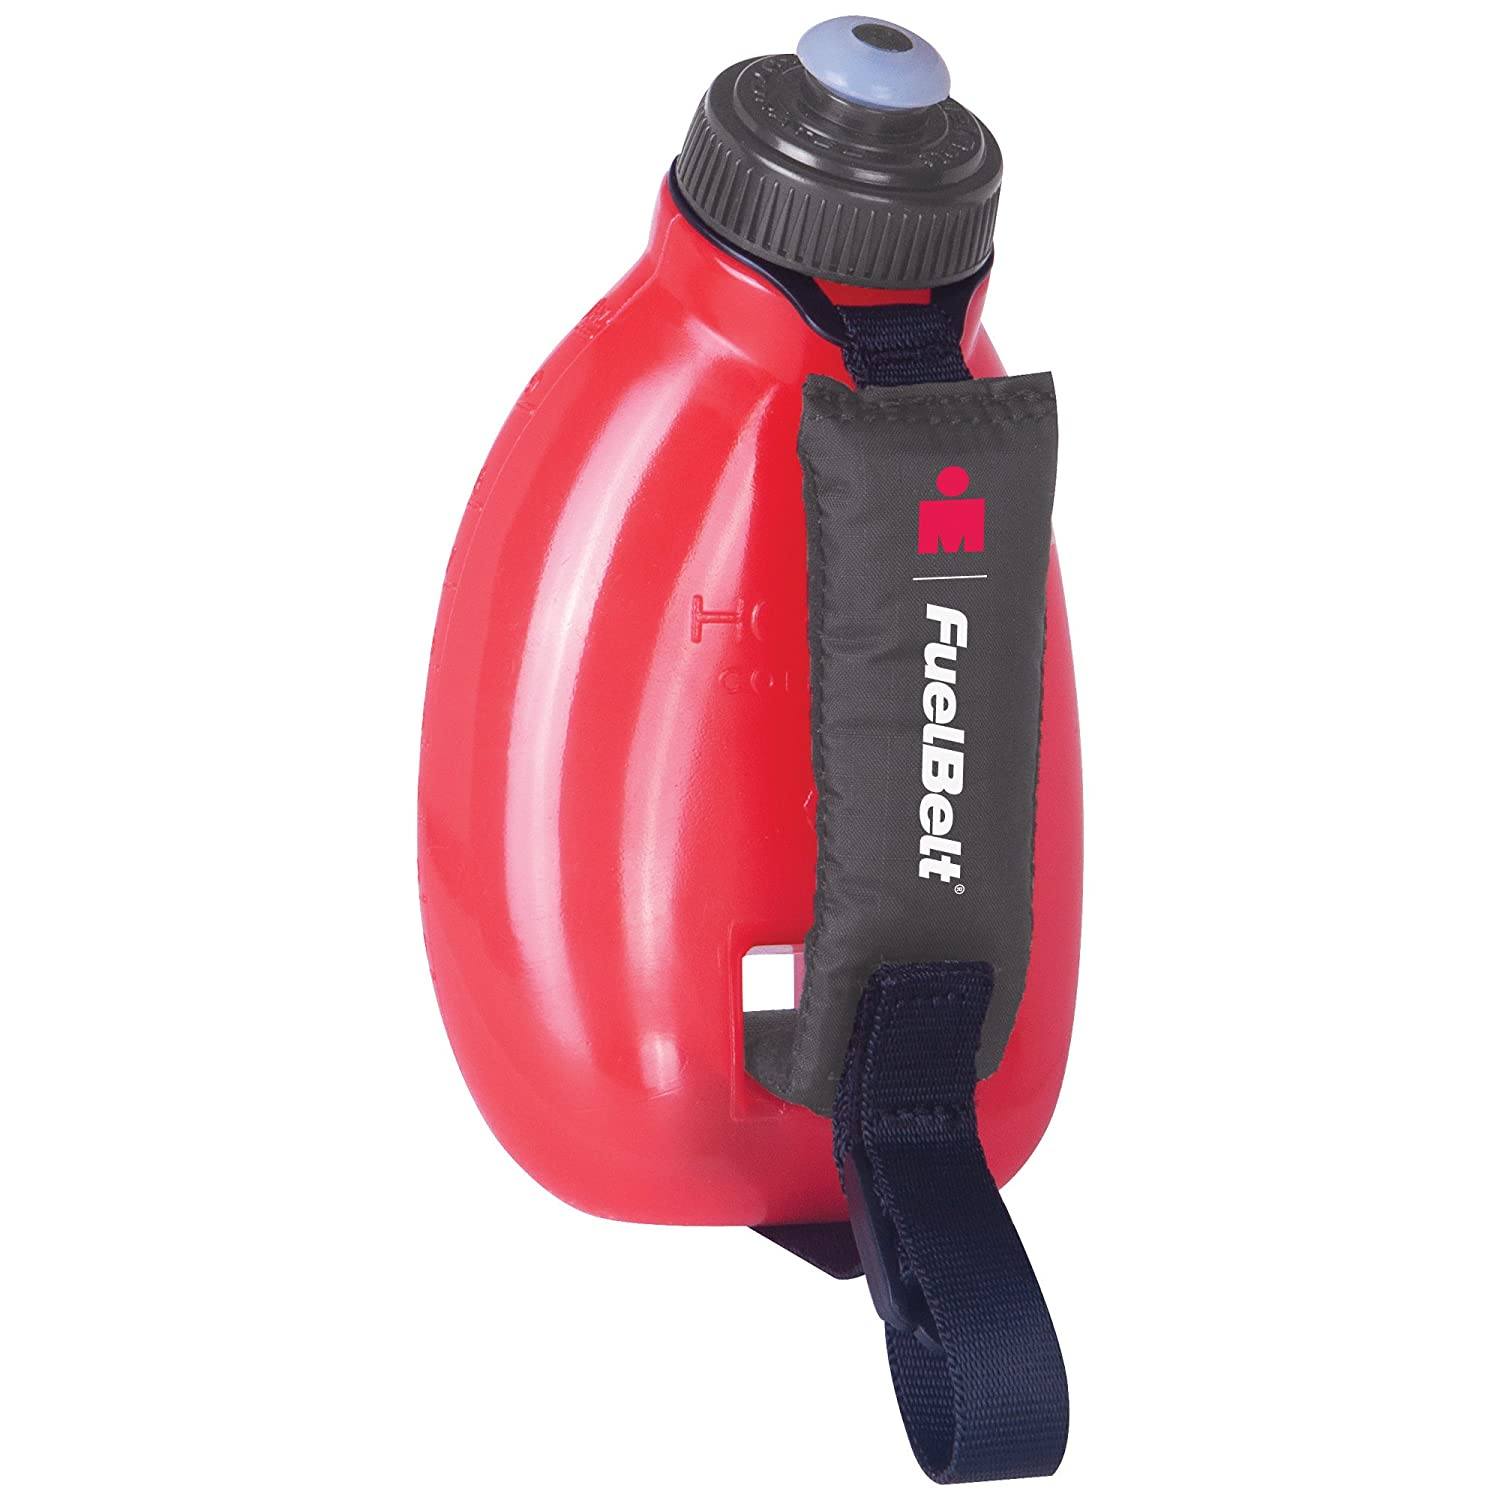 FueltBelt Hydration Accessory FuelBelt Ironman Helium Sprint Palm Holder, Black/Red, One Size, 60431#0009941